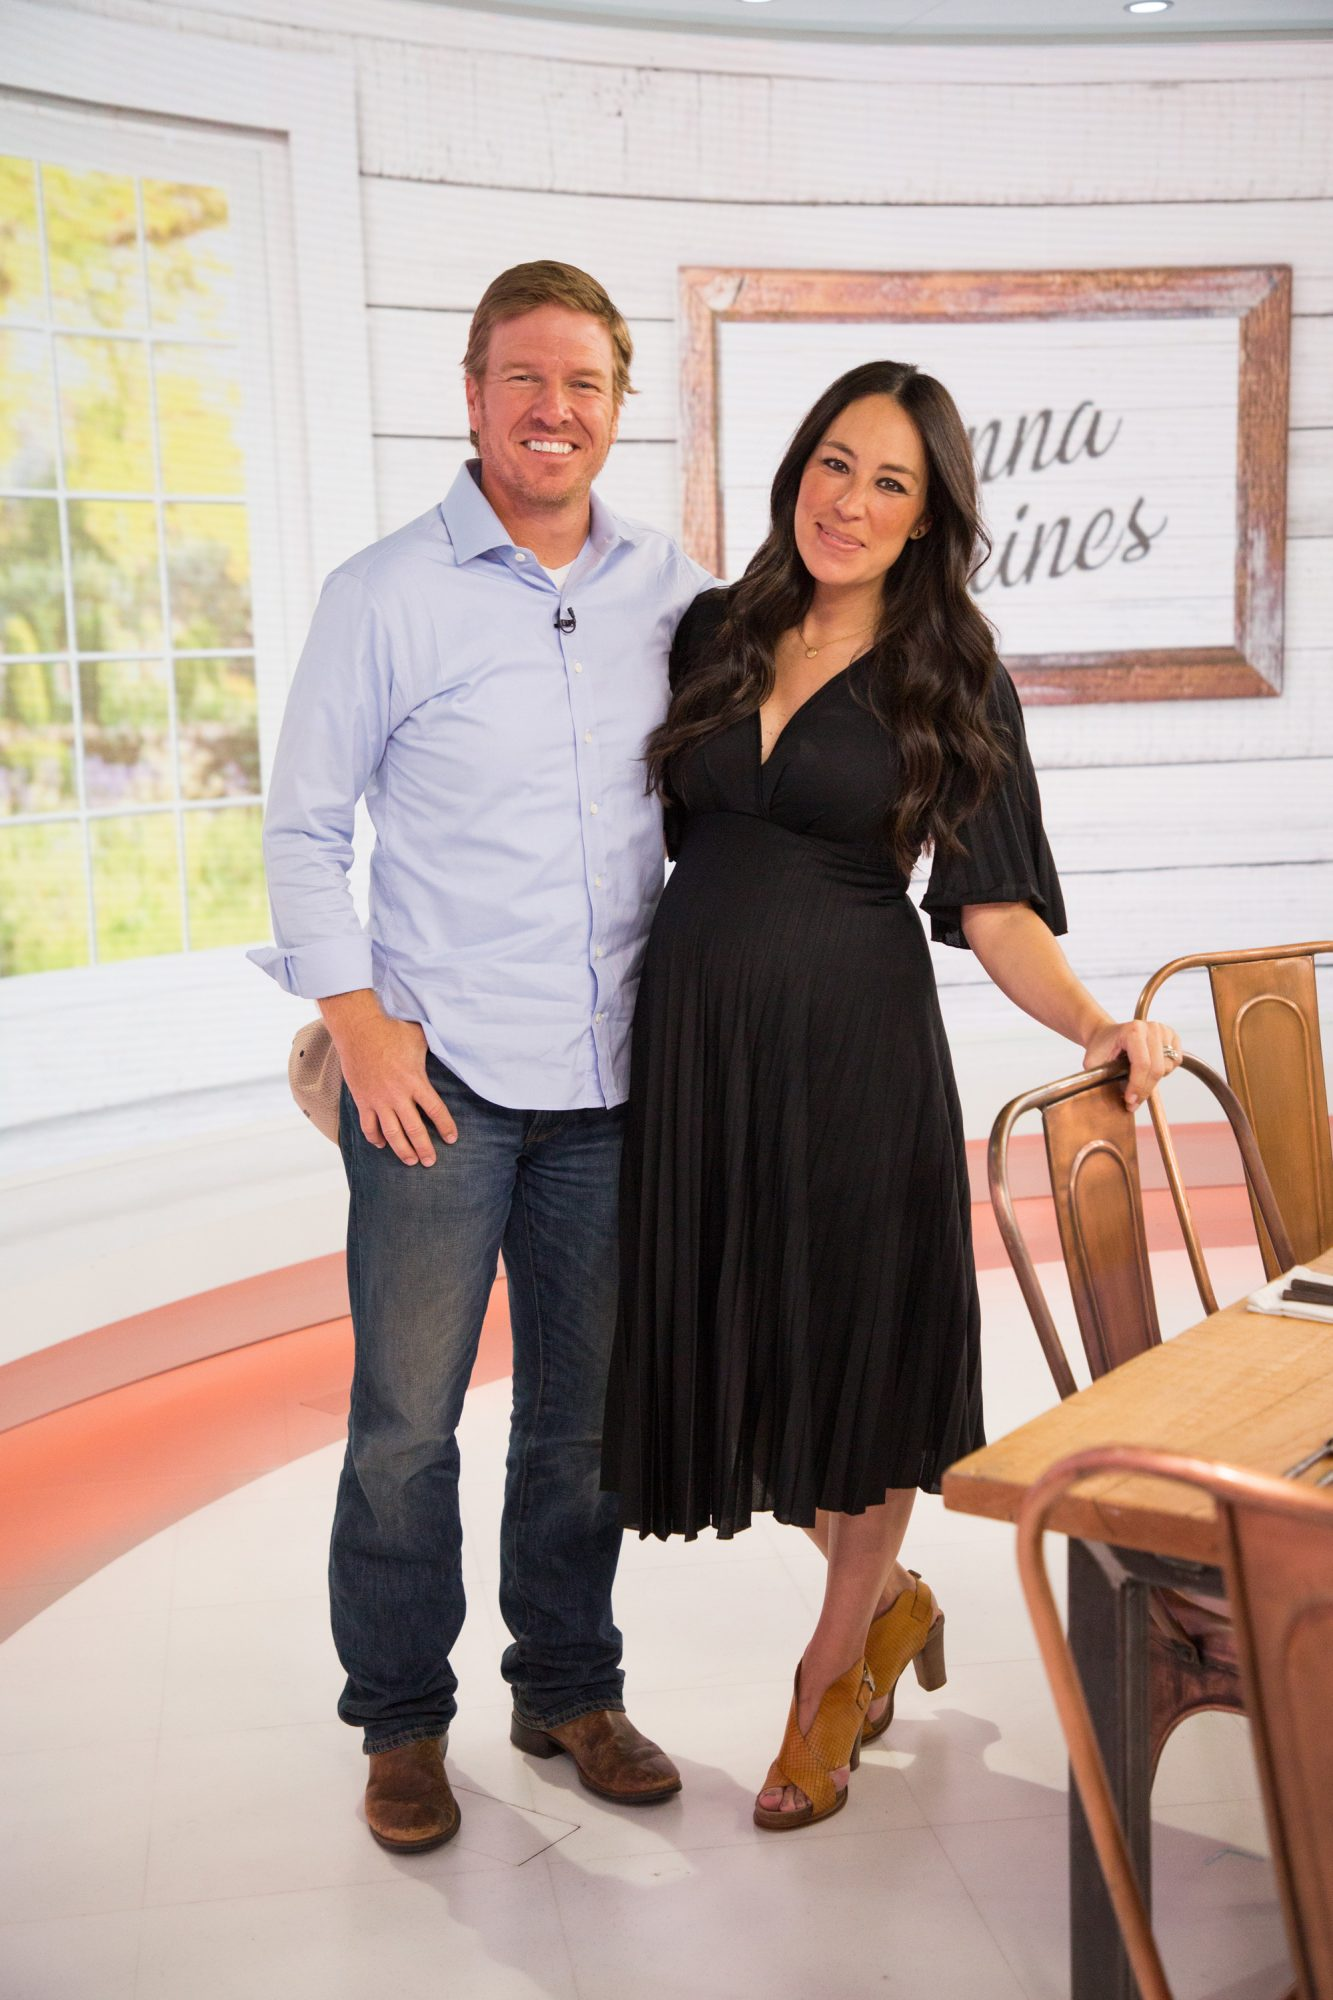 Joanna Gaines, April 2018